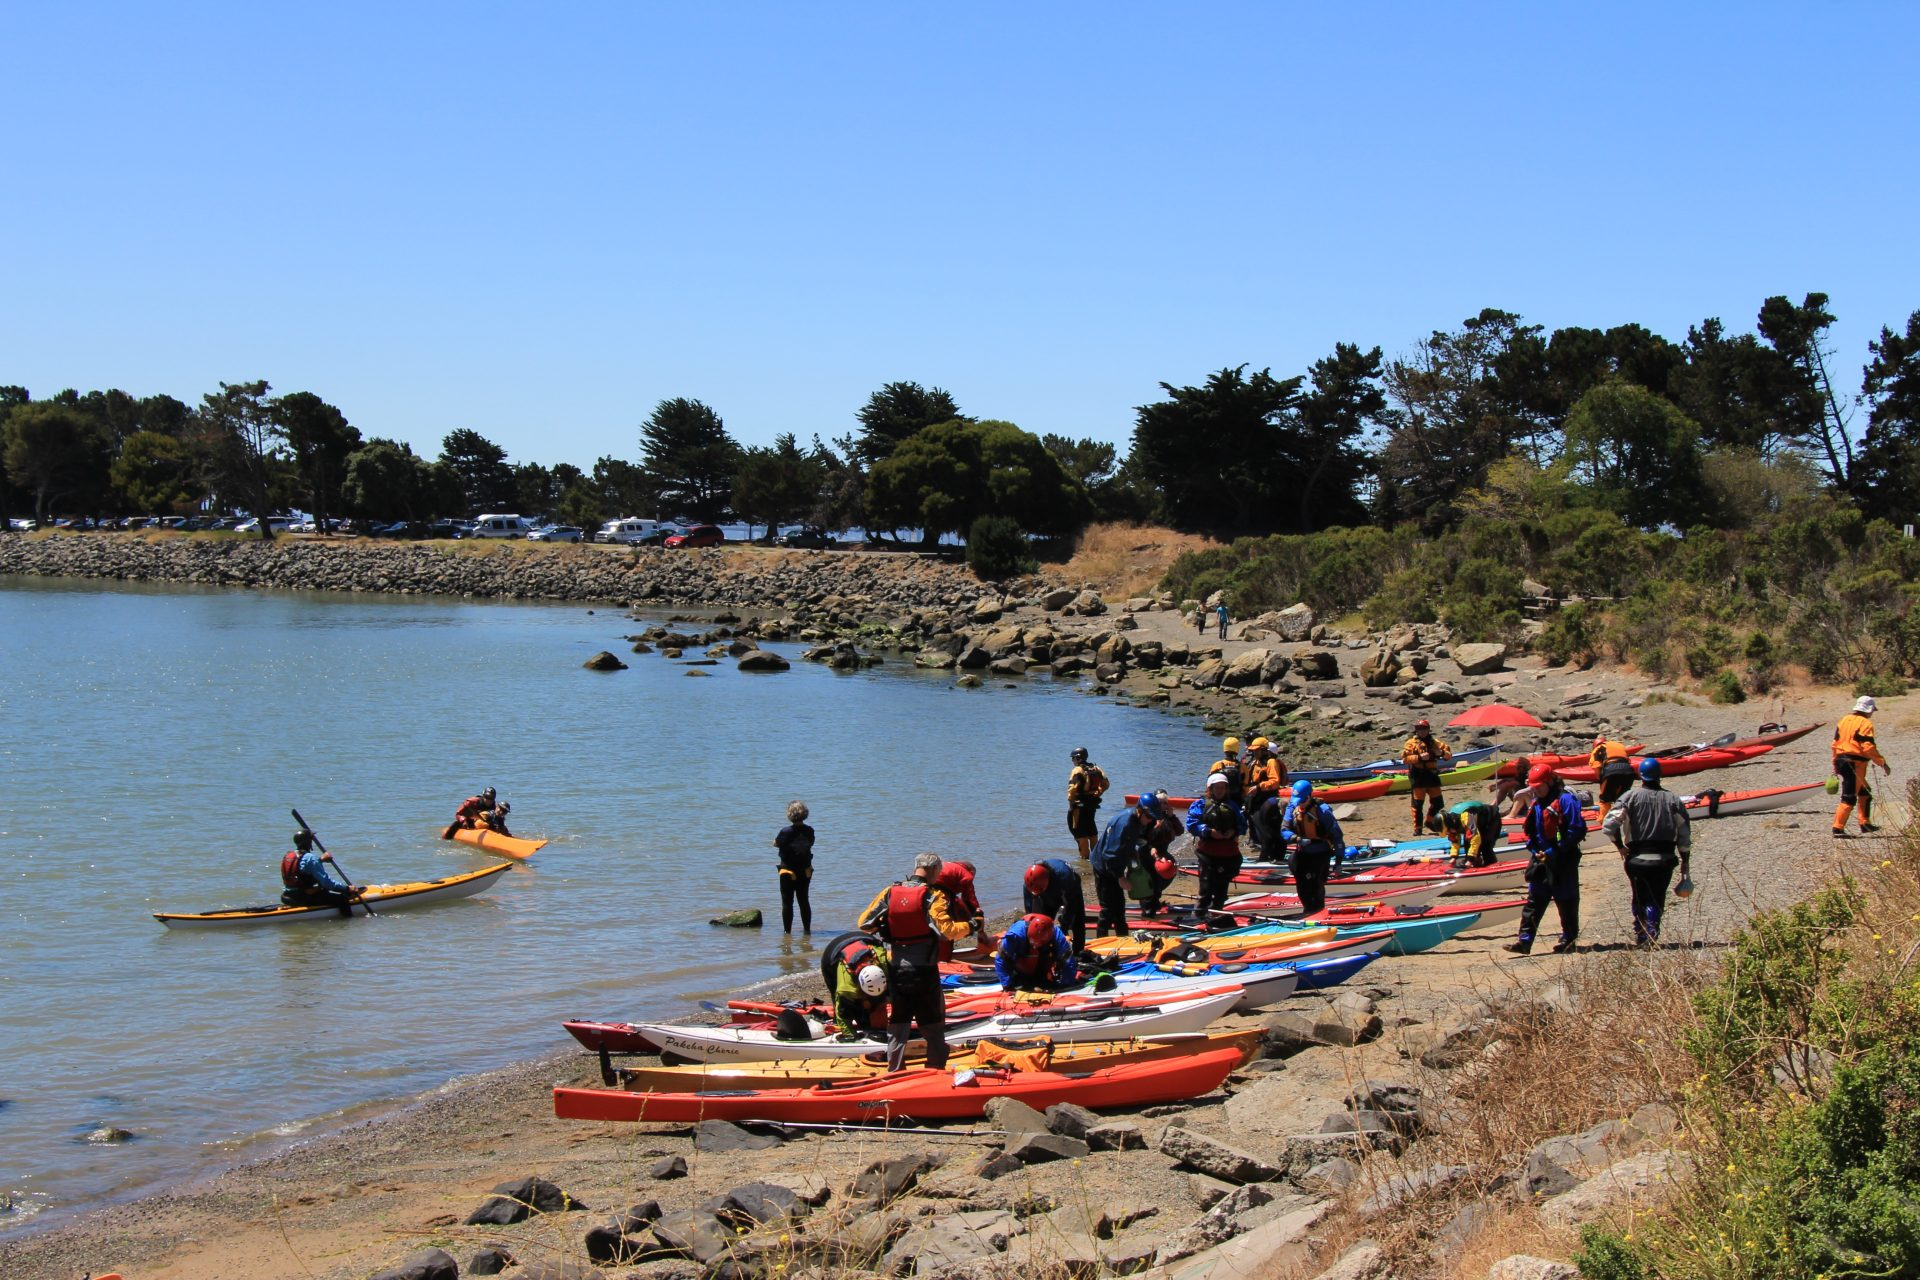 Large group of kayakers milling around boats on sandy beach